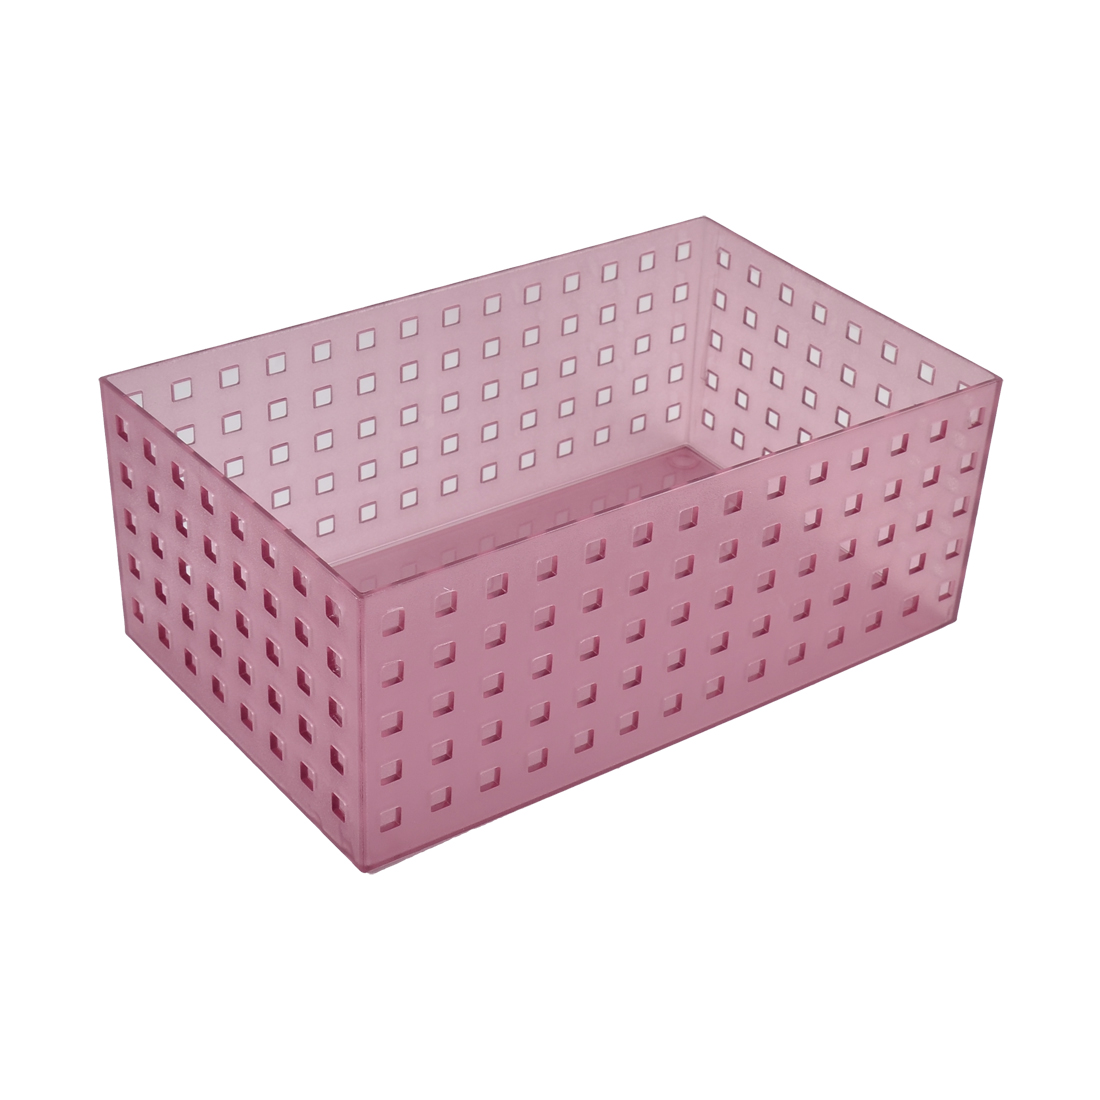 Household Office School Resin Hollow Out Design Storage Basket Light Purple